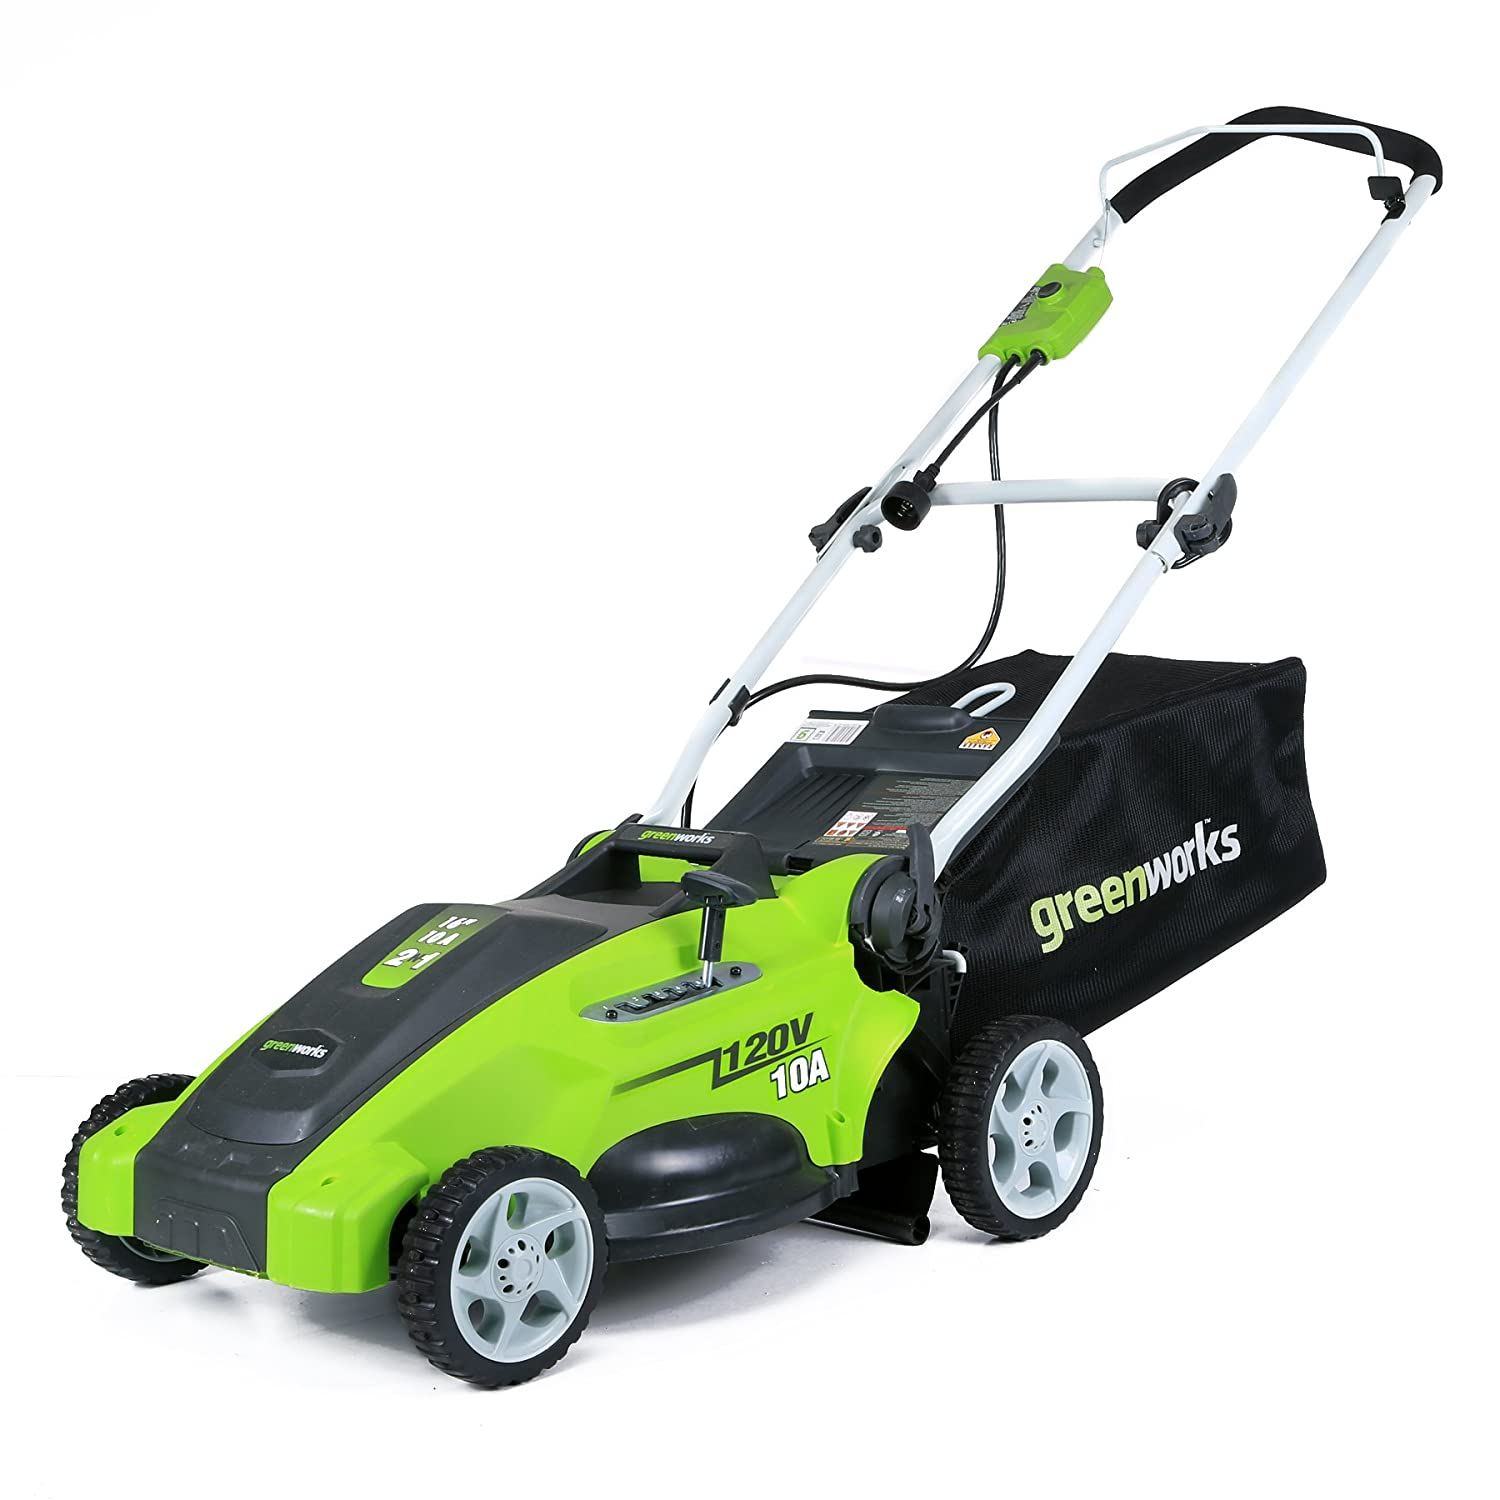 Greenworks 25142 10-amp Corded 16-inch Lawn Mower Review